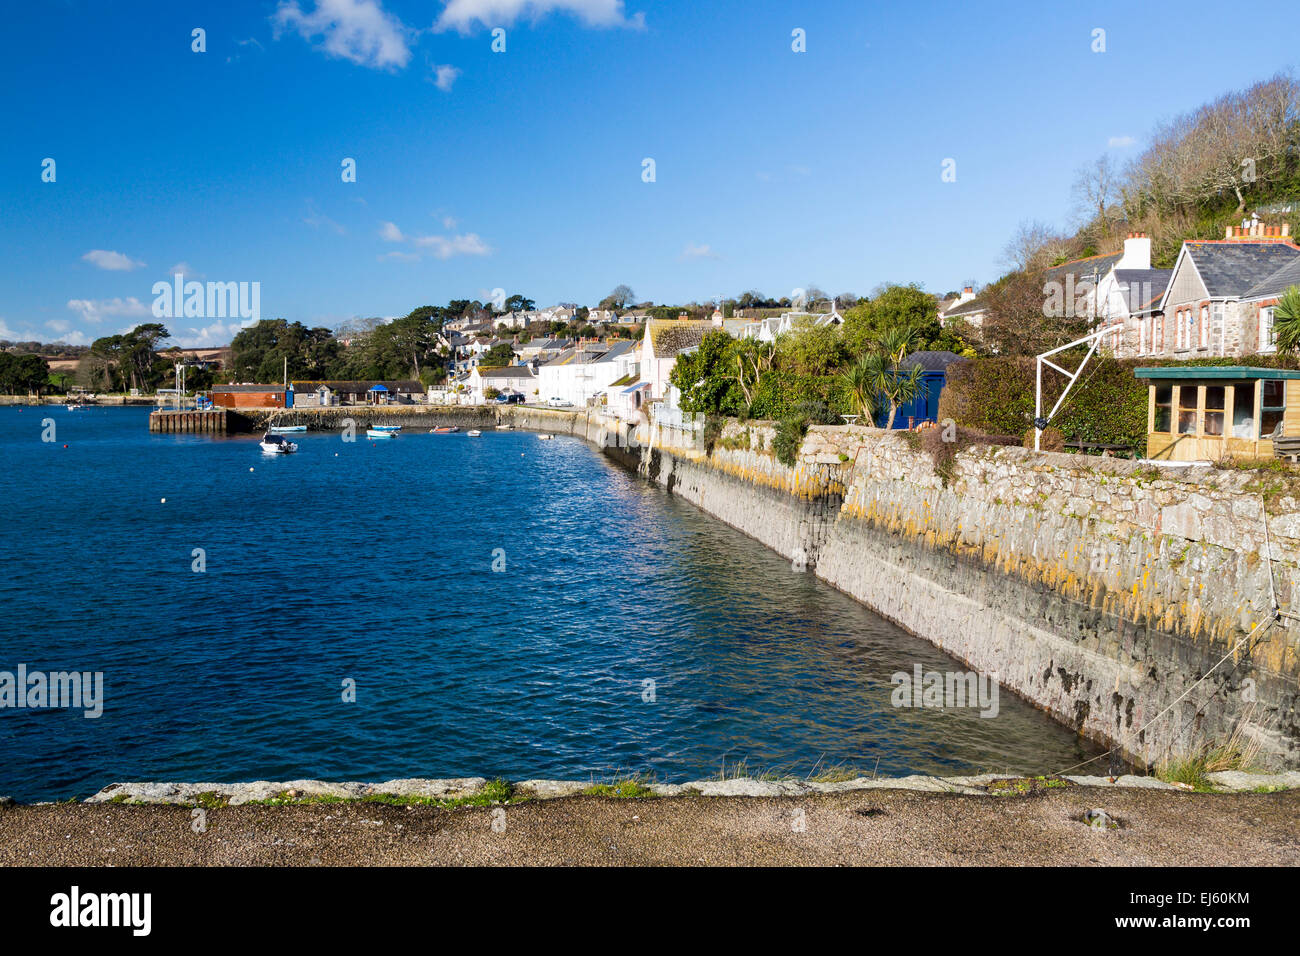 The coastal village of Flushing on the Penryn River, Part of the Carrick Roads Cornwall England UK Europe Stock Photo